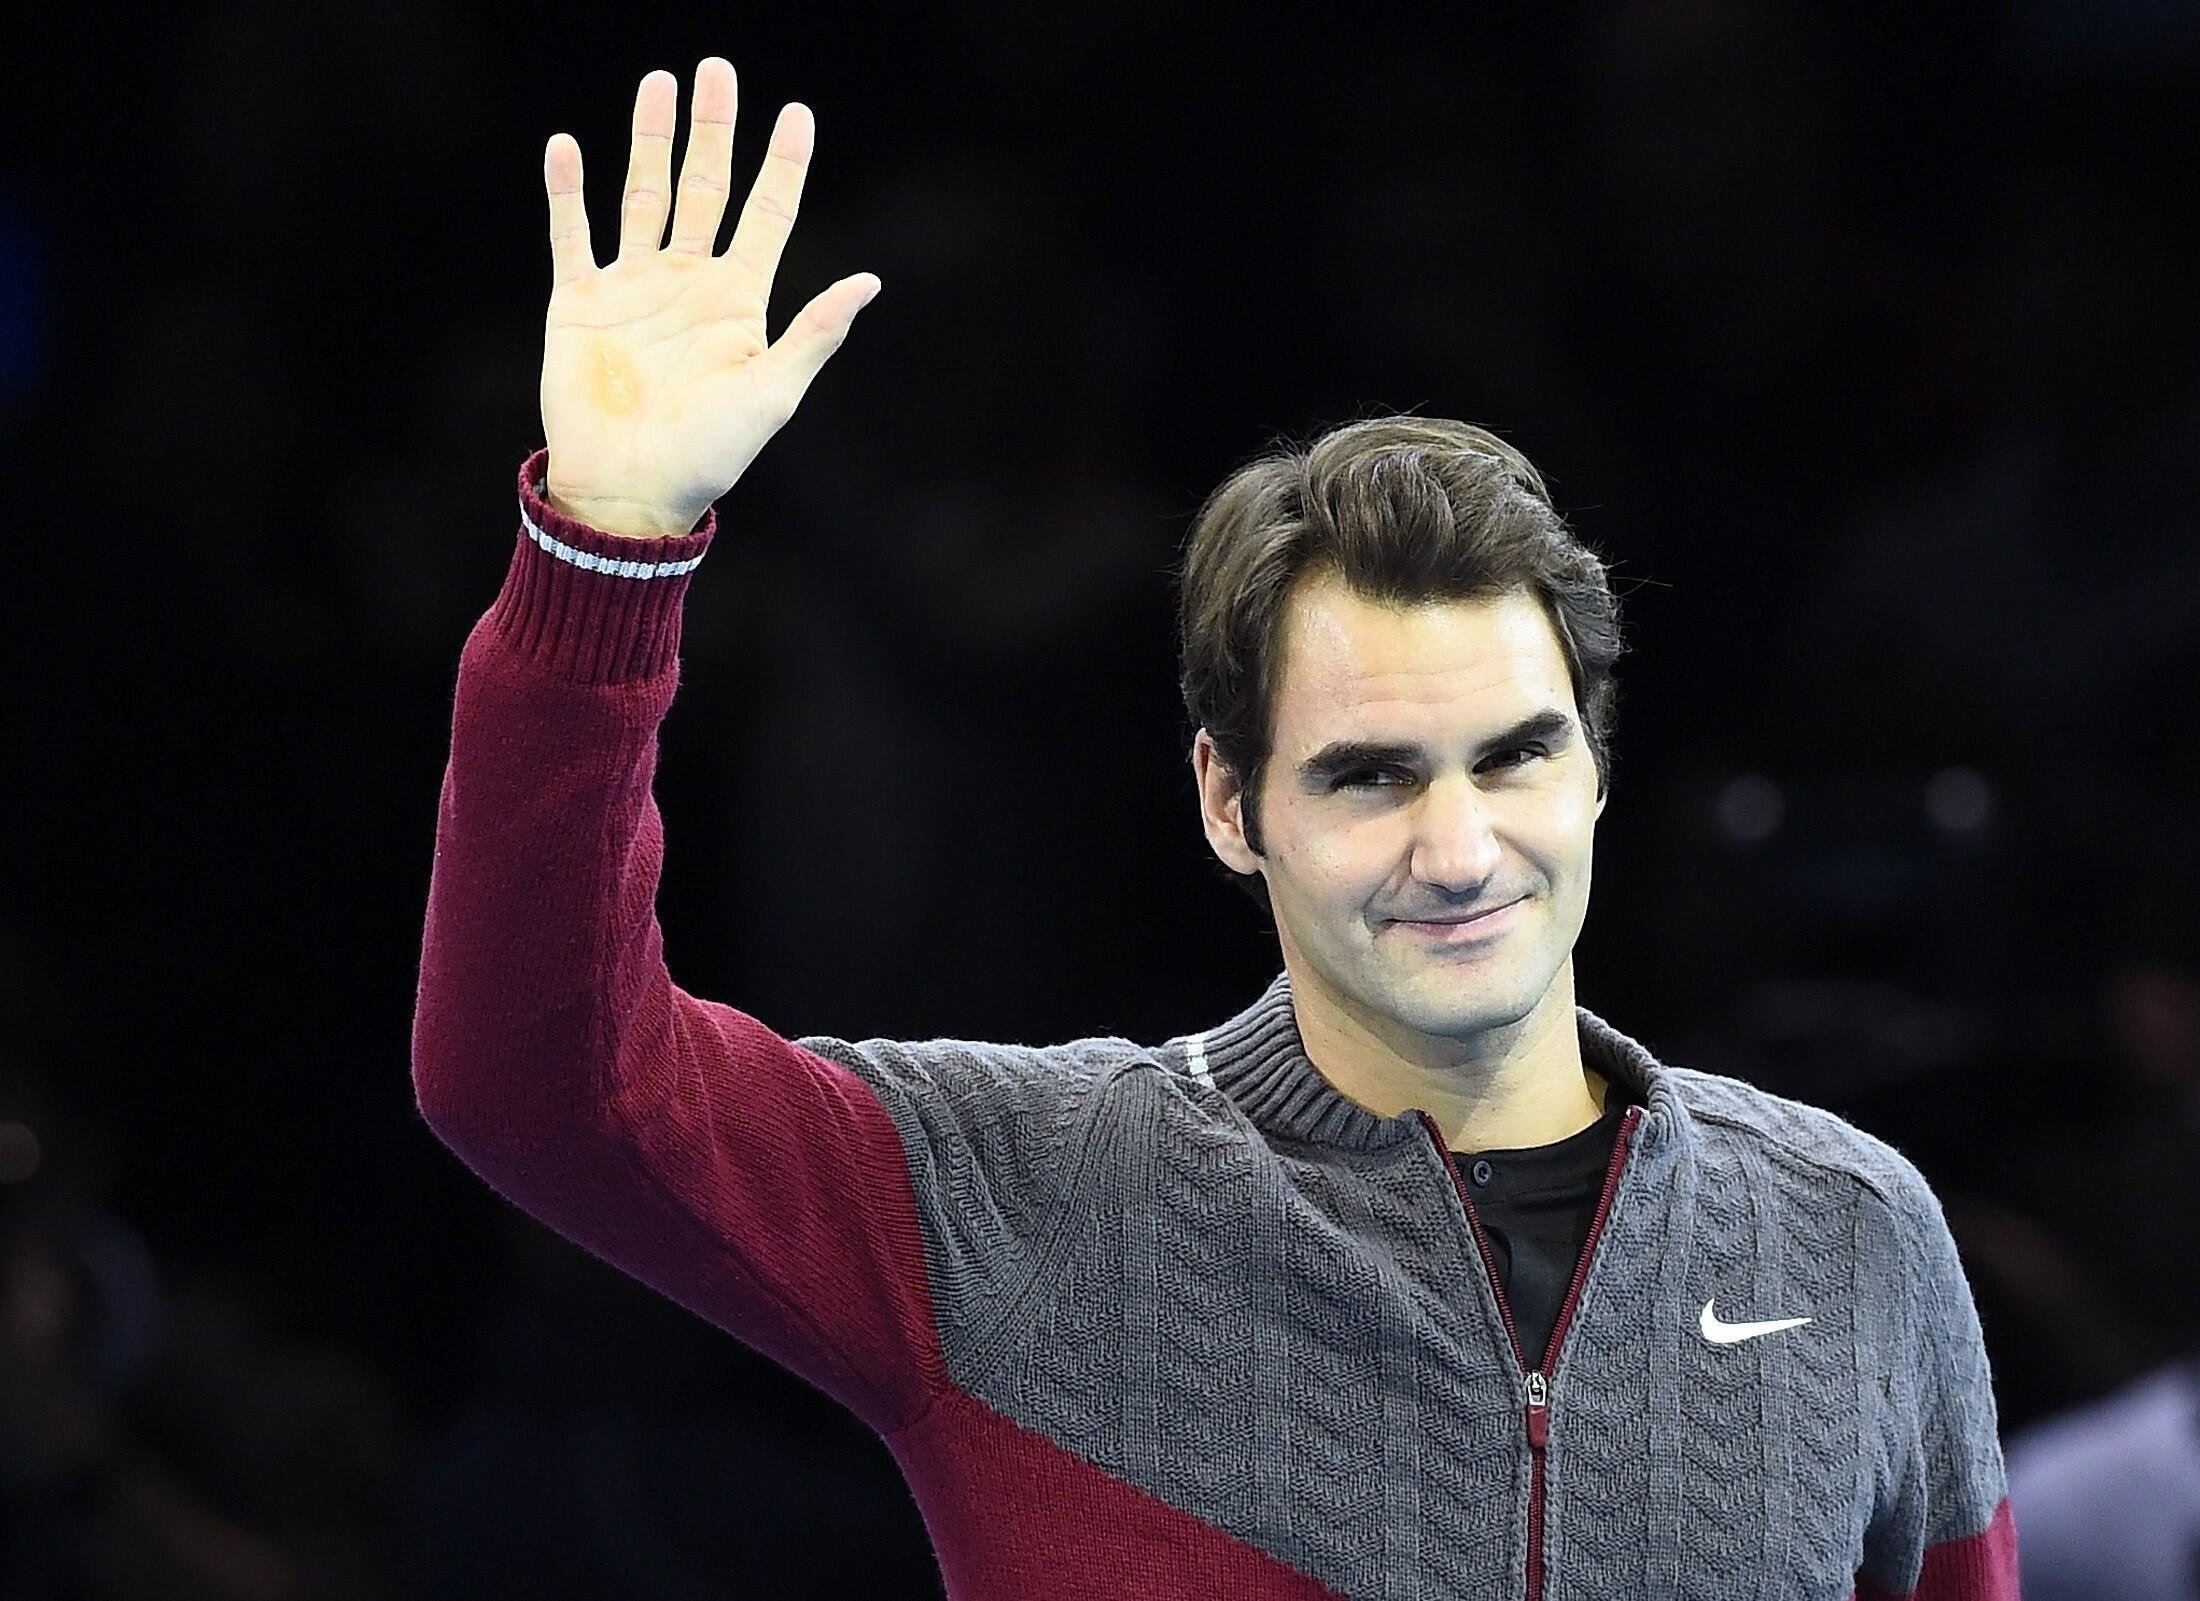 Roger Federer reached the final of the Istanbul Open following a three set win over Diego Sebastian Schwartzman